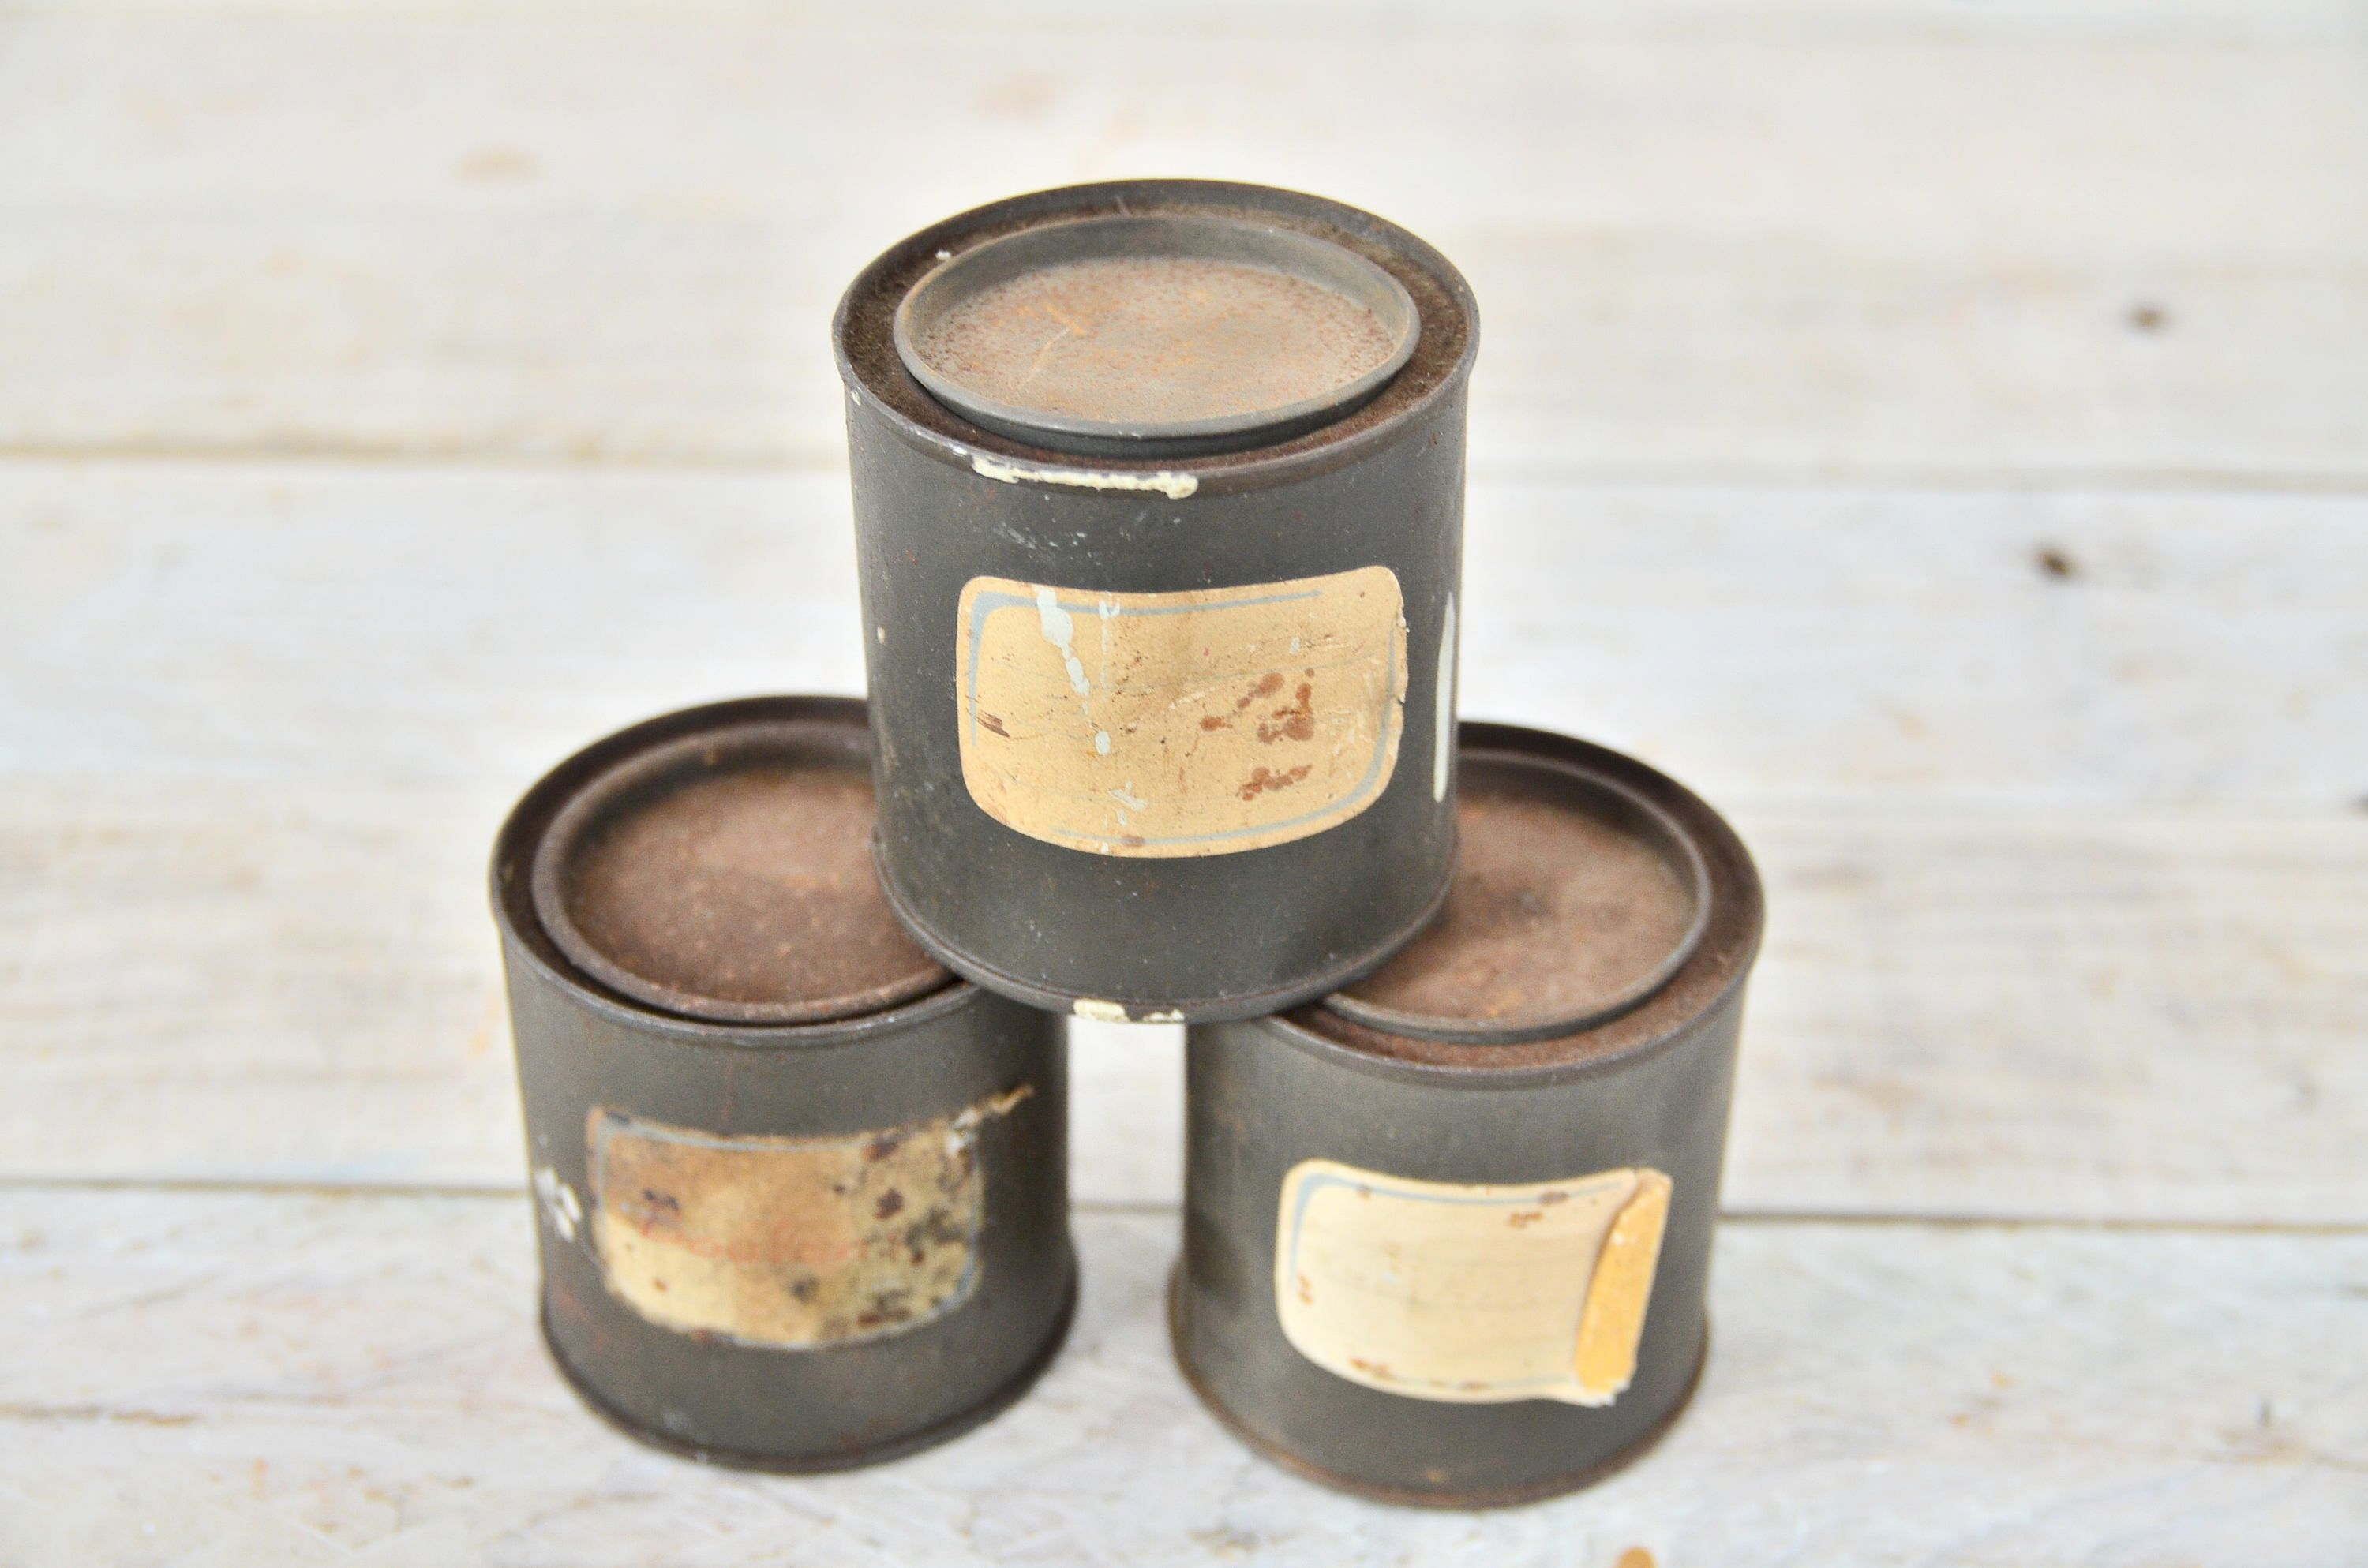 MILITARY TIN CAN - Lot of 3 Iron Box Industrial French Campaign ...